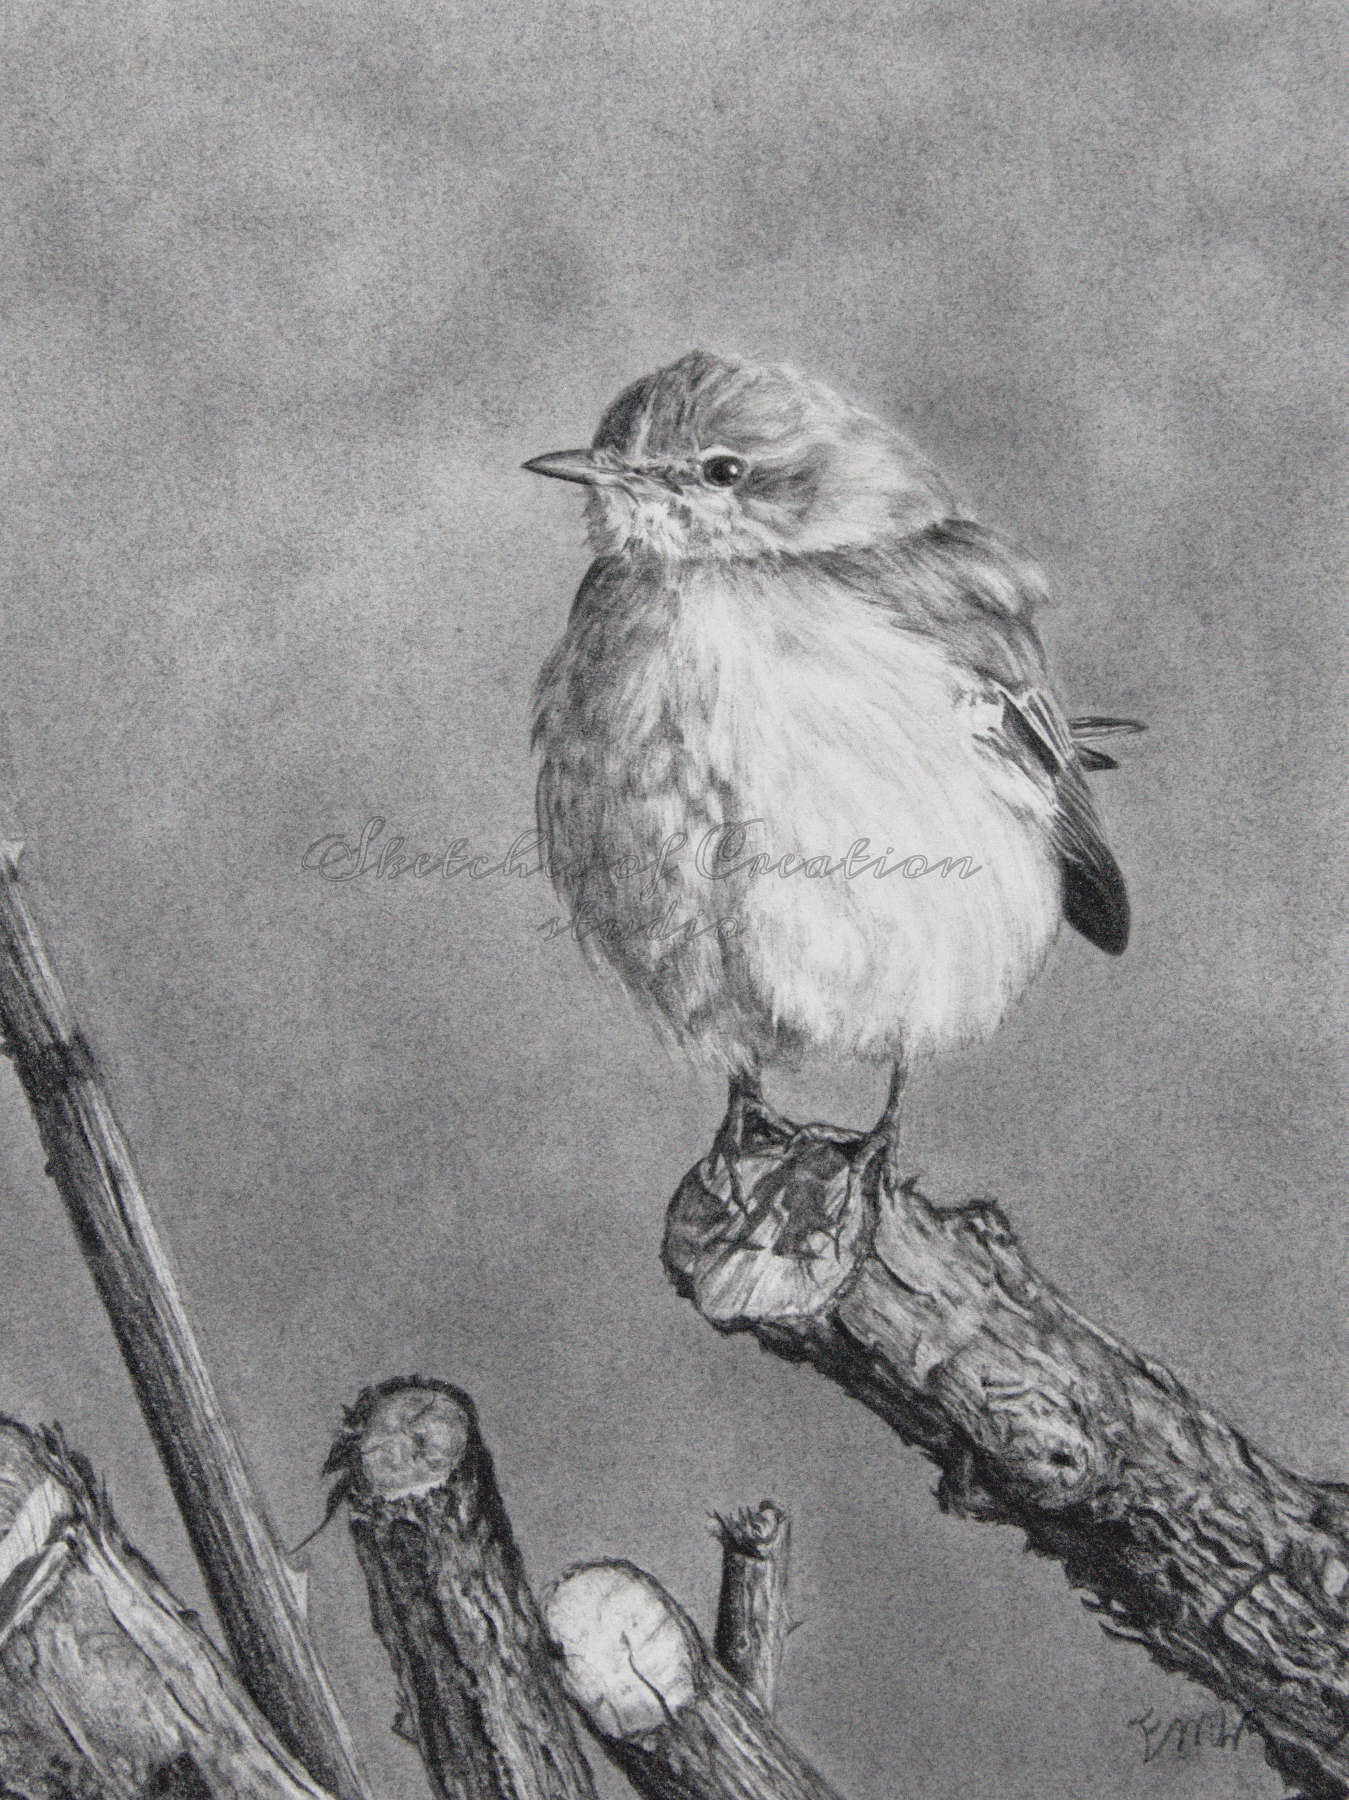 'Perching' a drawing of a Mockingbird perched atop a cut branch. 6x8 inches. Completed July 2020